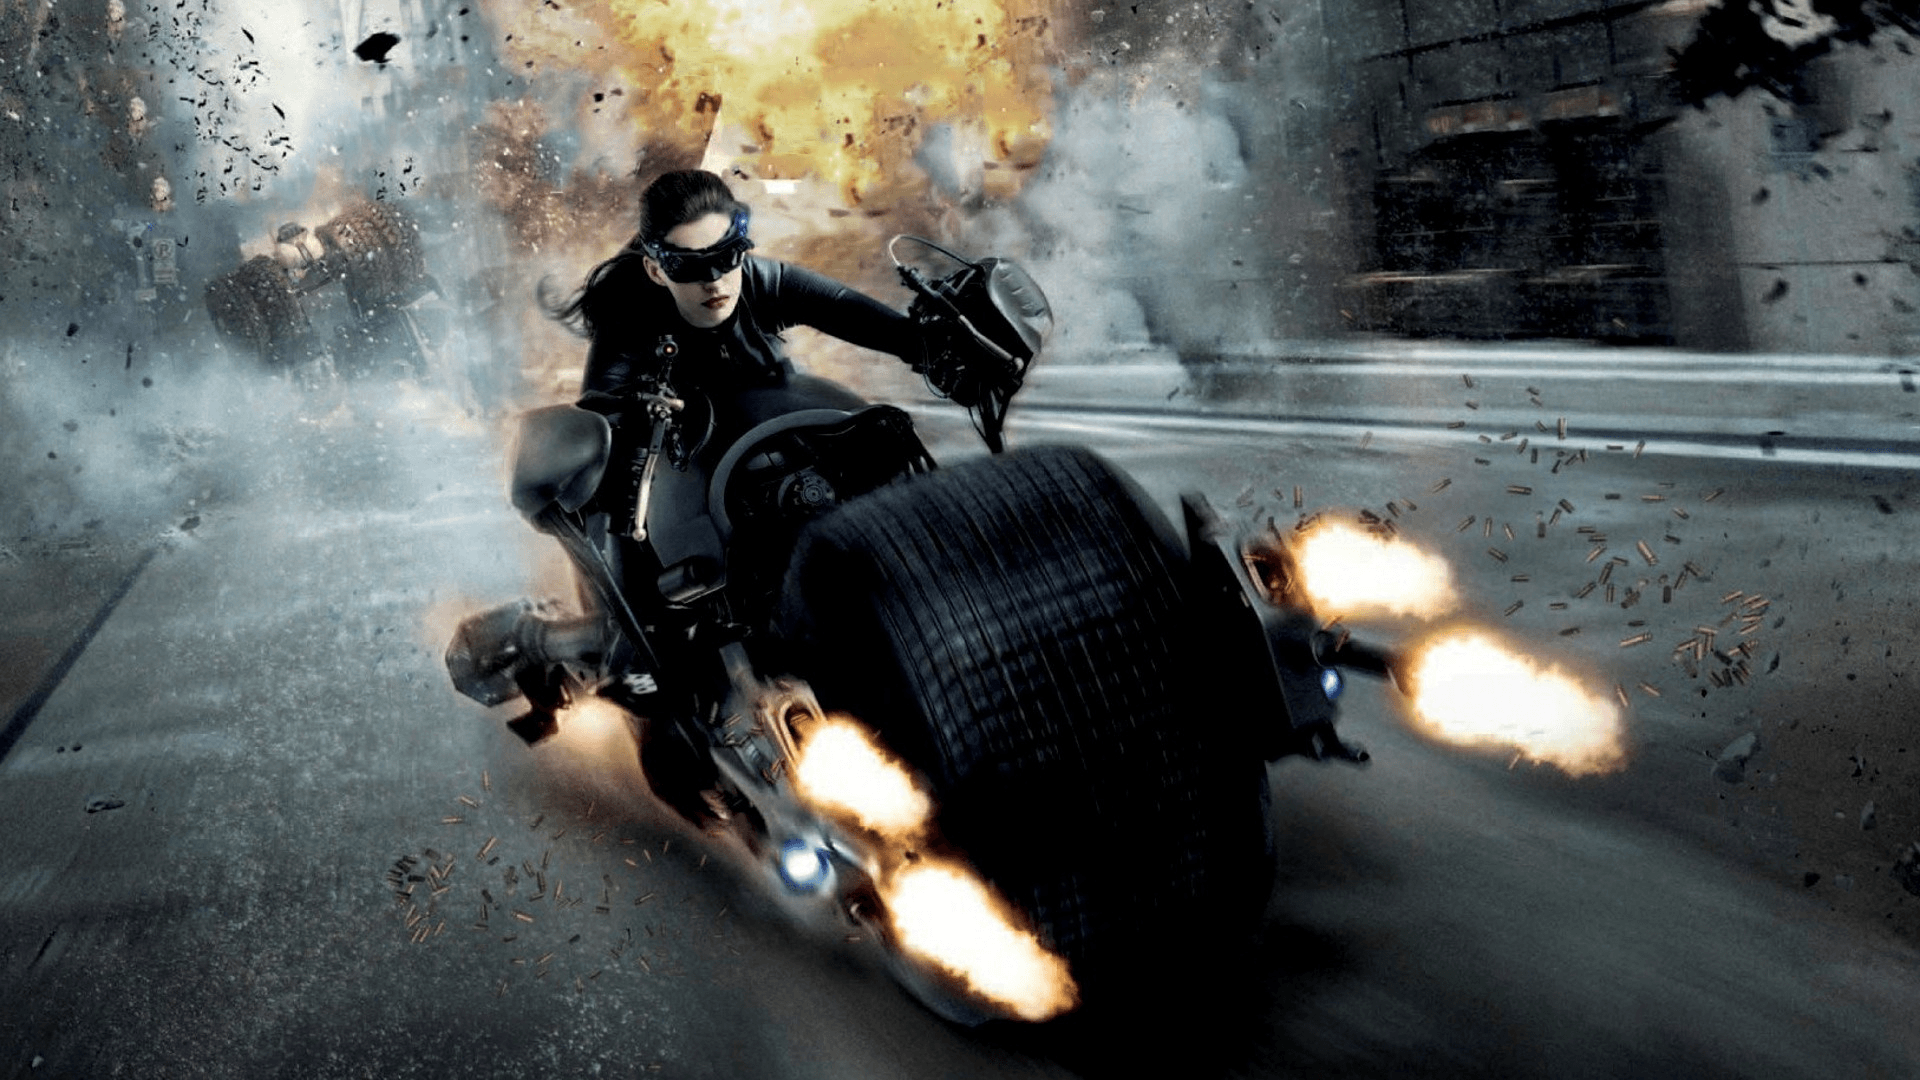 Batman Bike Wallpapers Wallpaper Cave